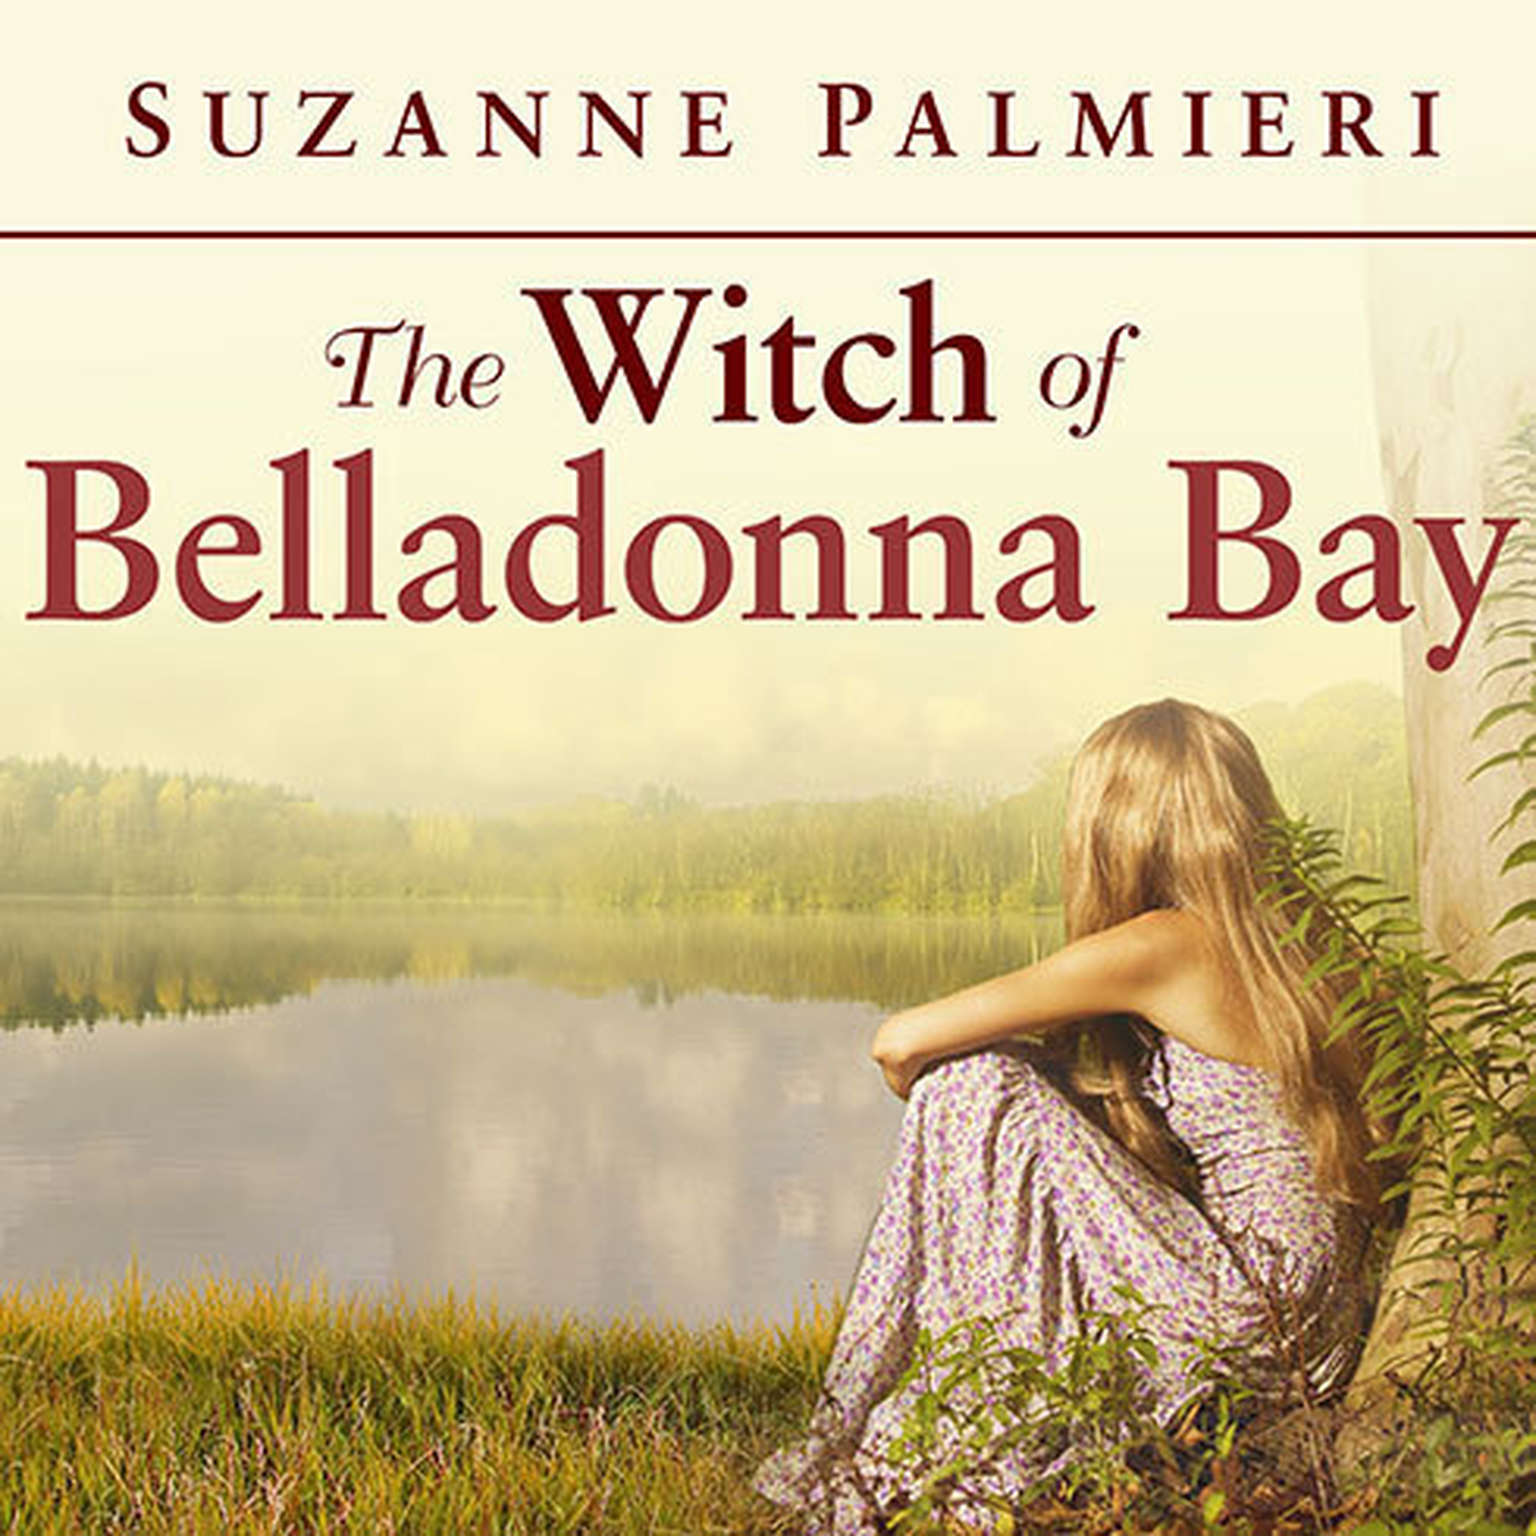 Printable The Witch of Belladonna Bay Audiobook Cover Art